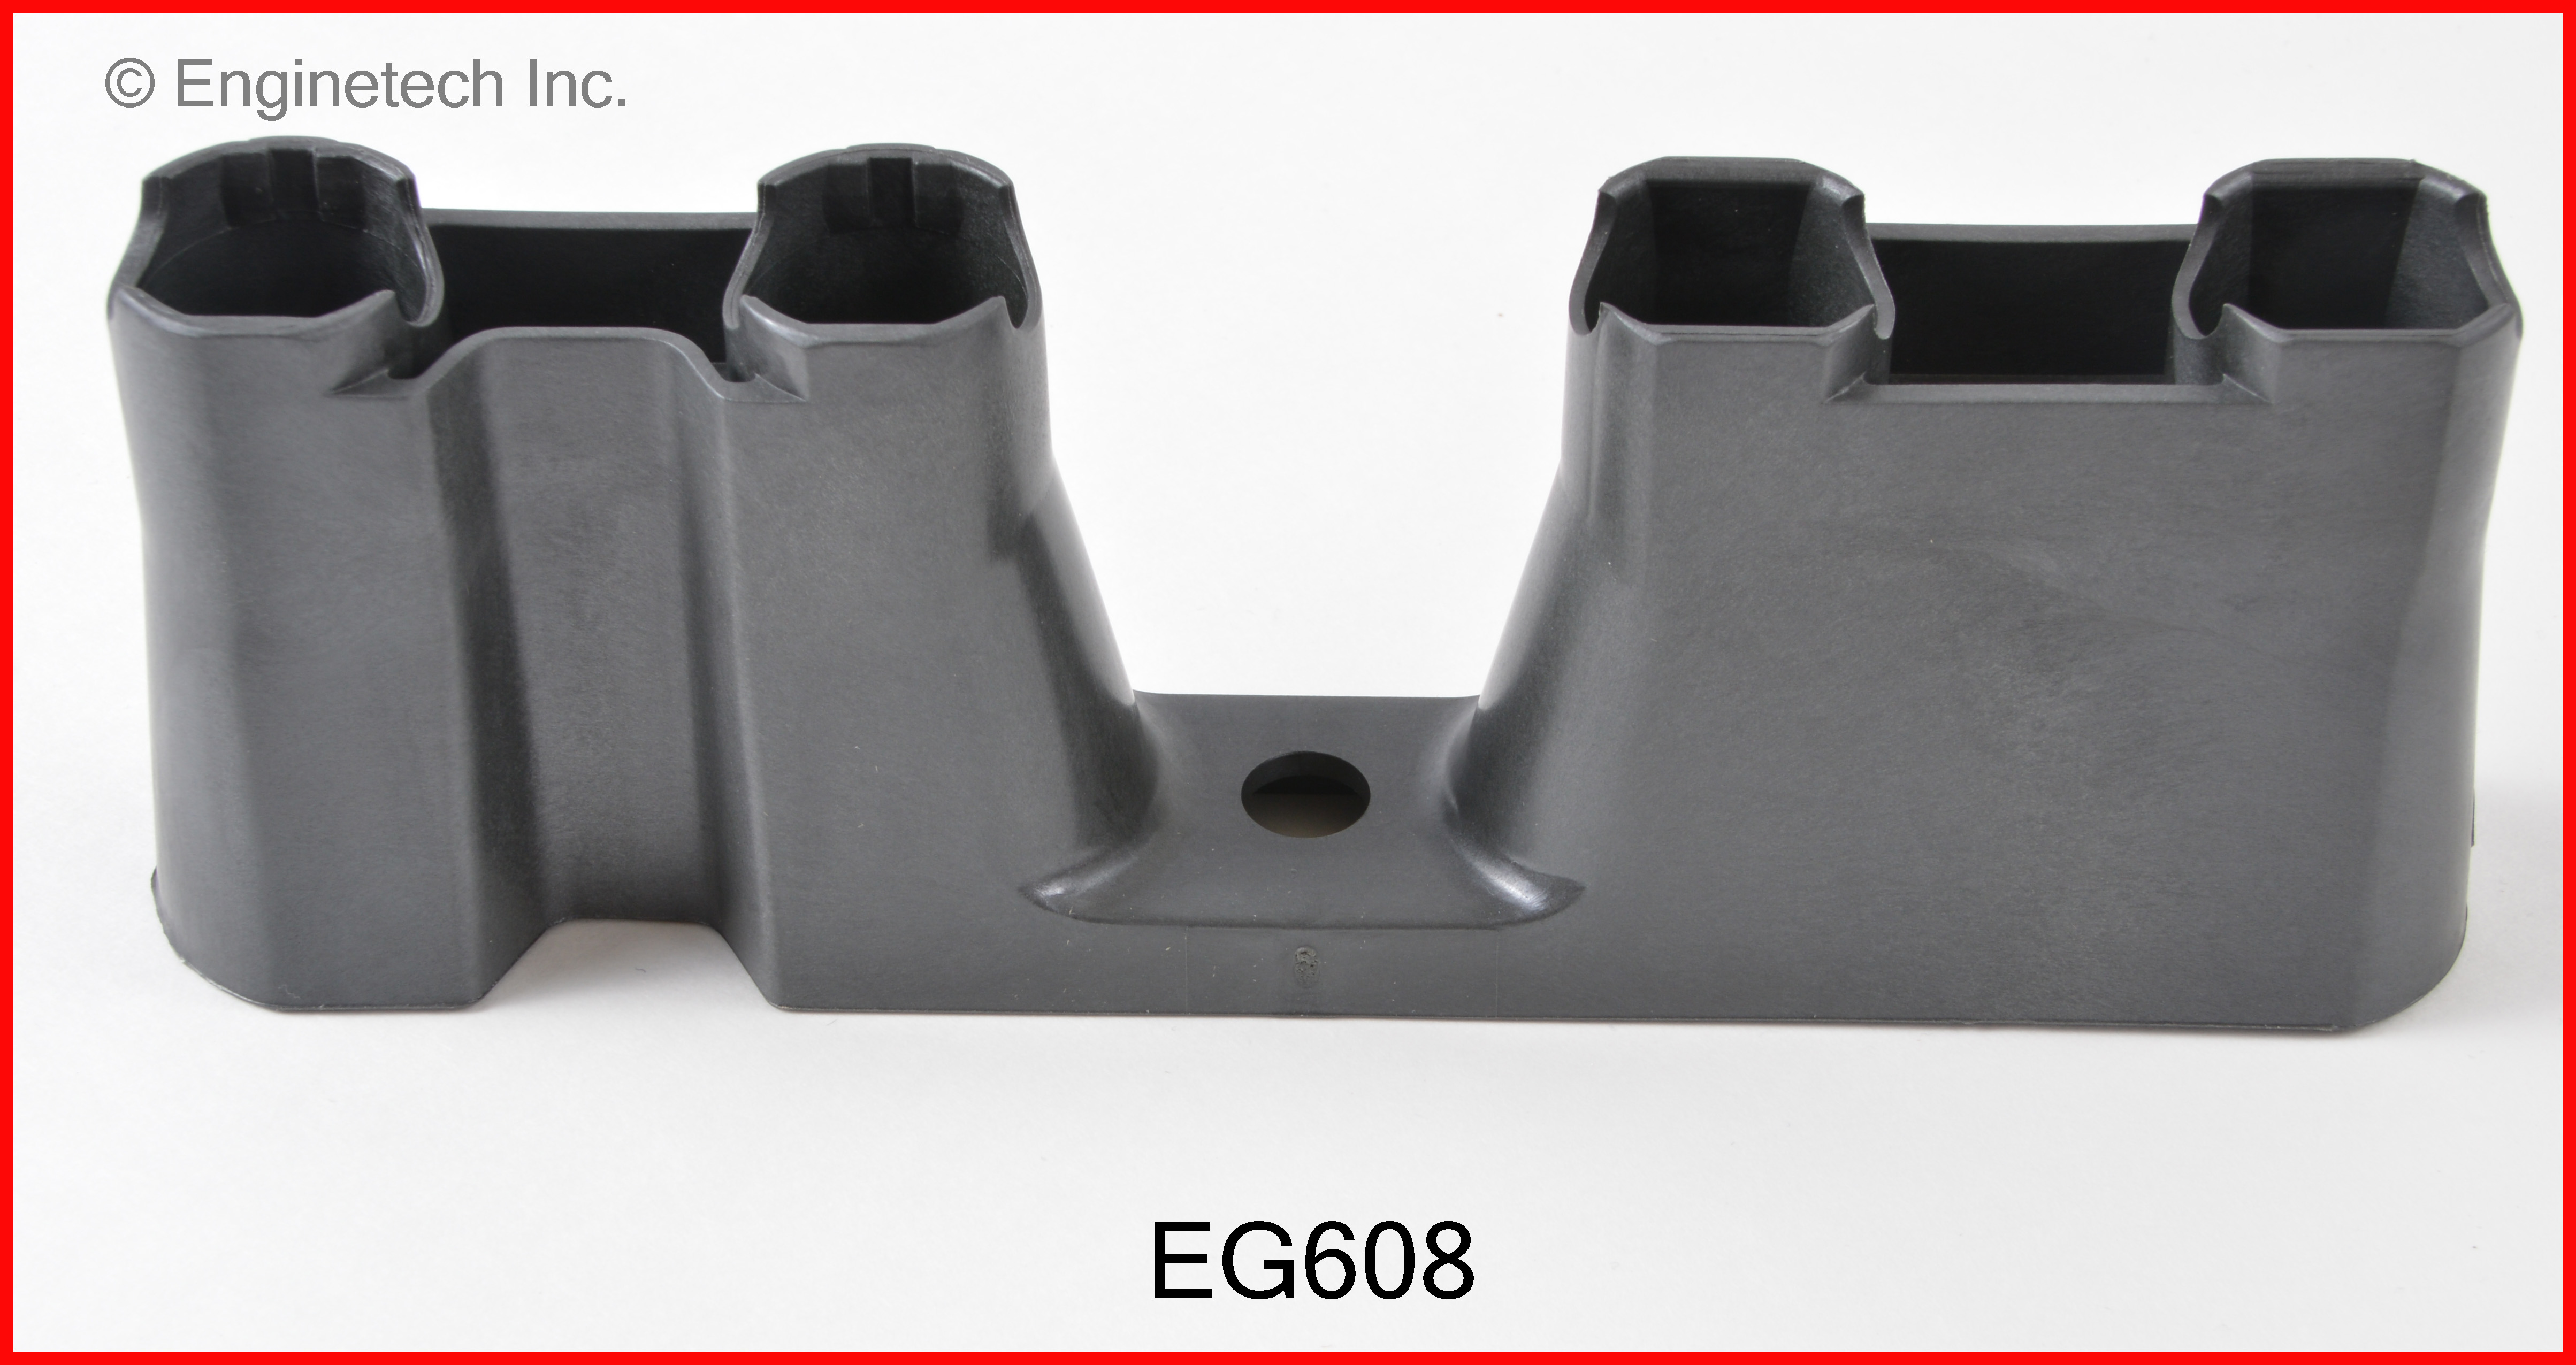 EG608 Valve Lifter - Guide Enginetech